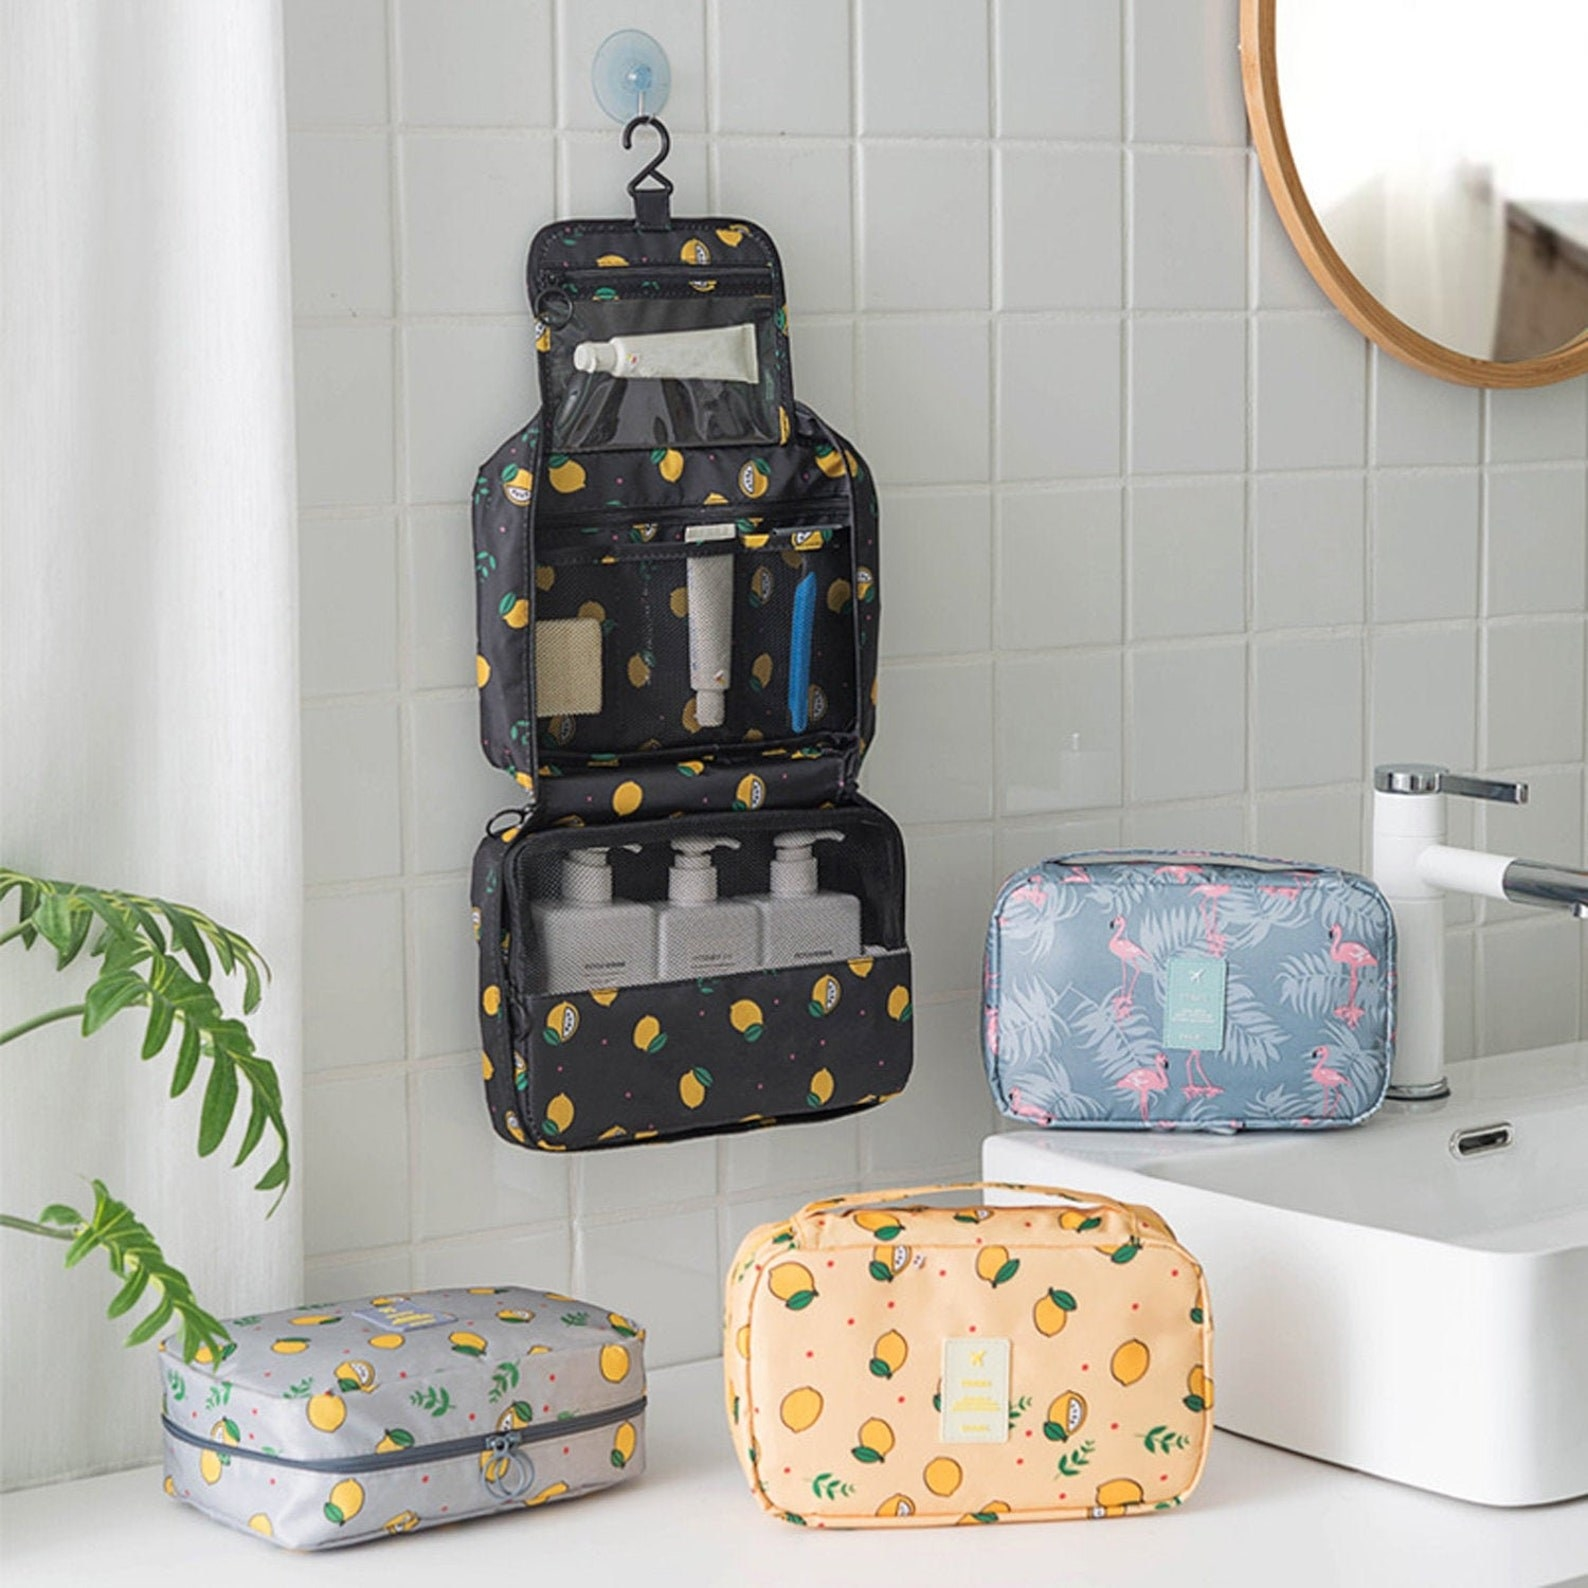 A hanging zippered pouch undone to show bottles, toothbrush and accessories inside